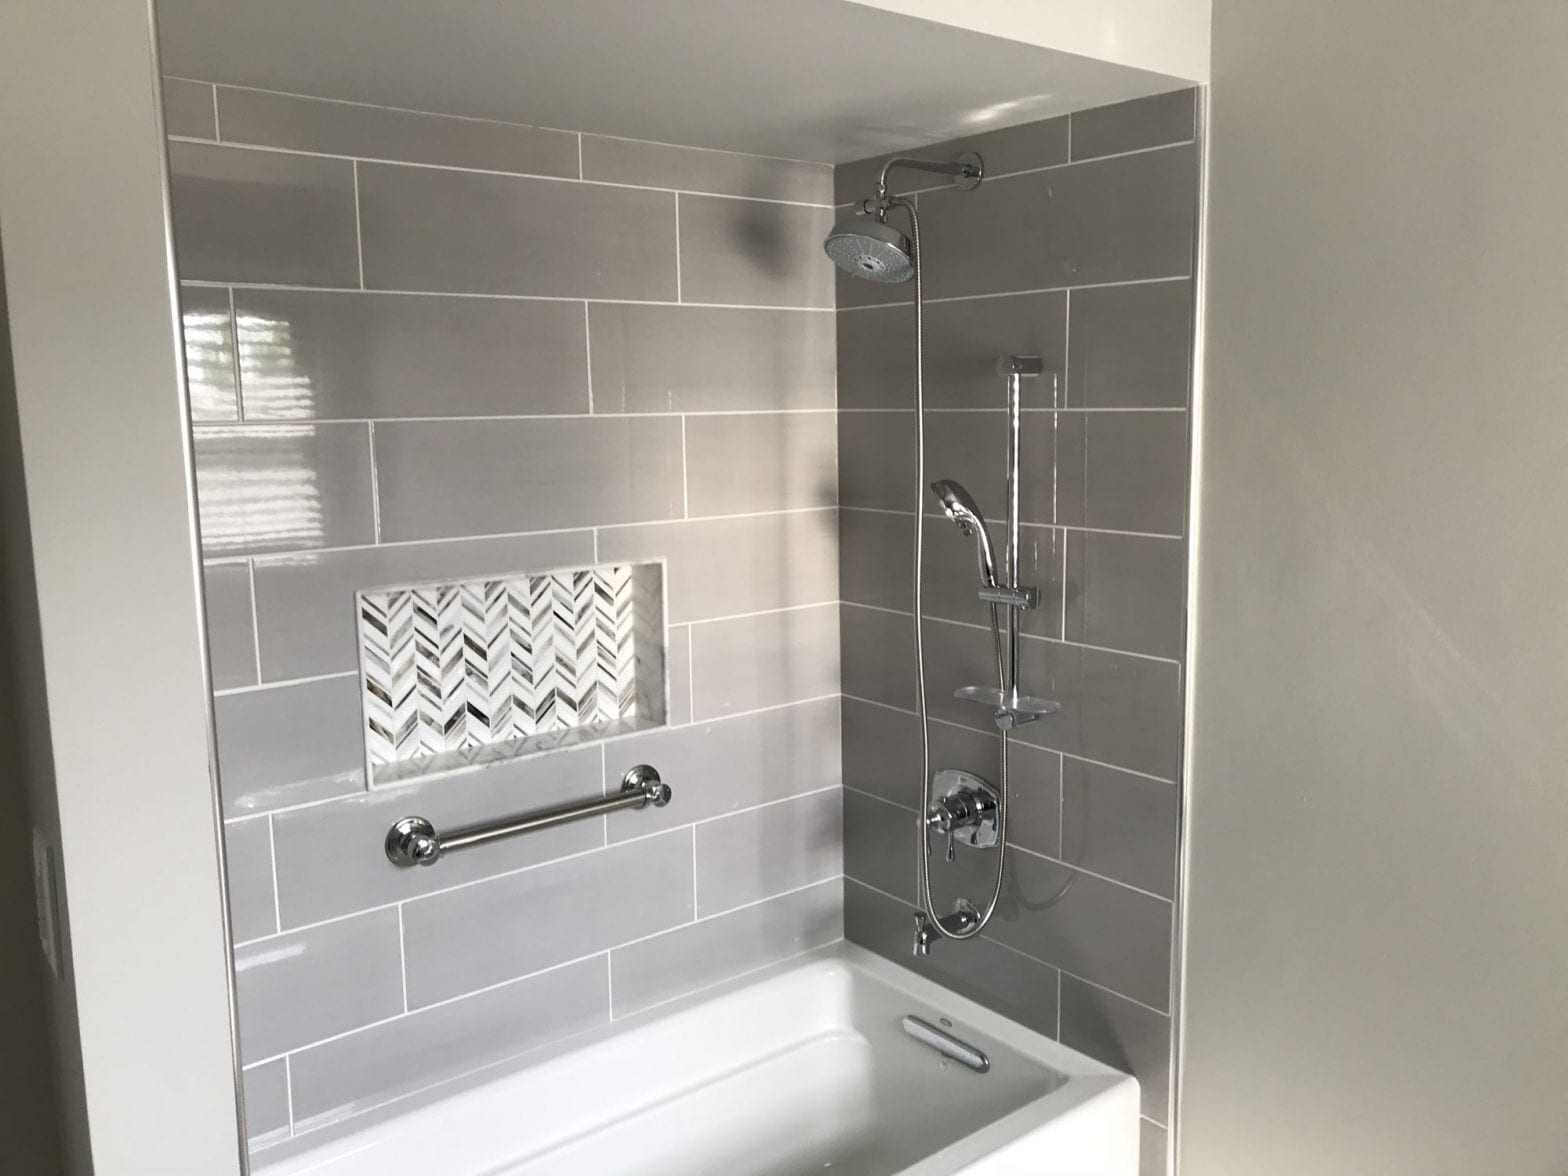 Bathroom remodeling in Schaumburg - new shower and tile